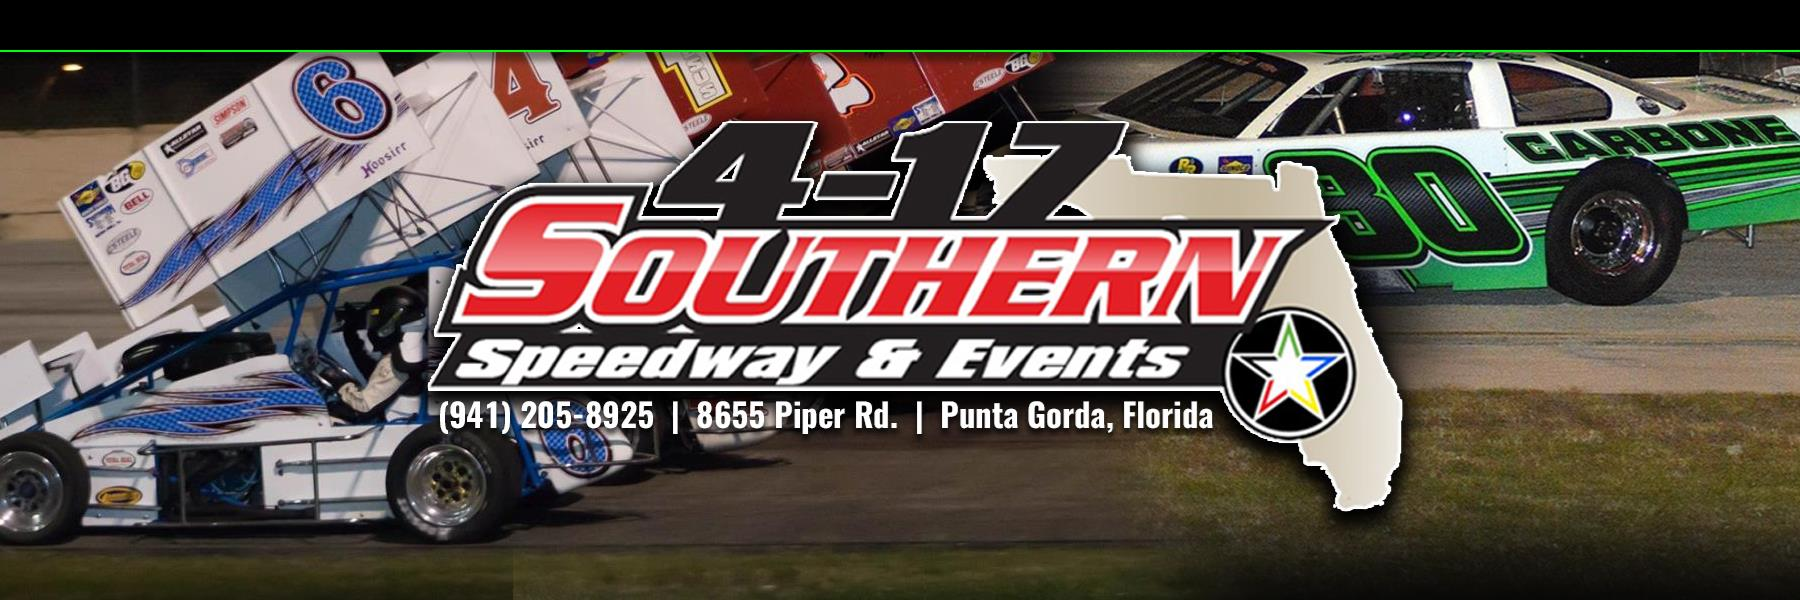 4-17 Southern Speedway